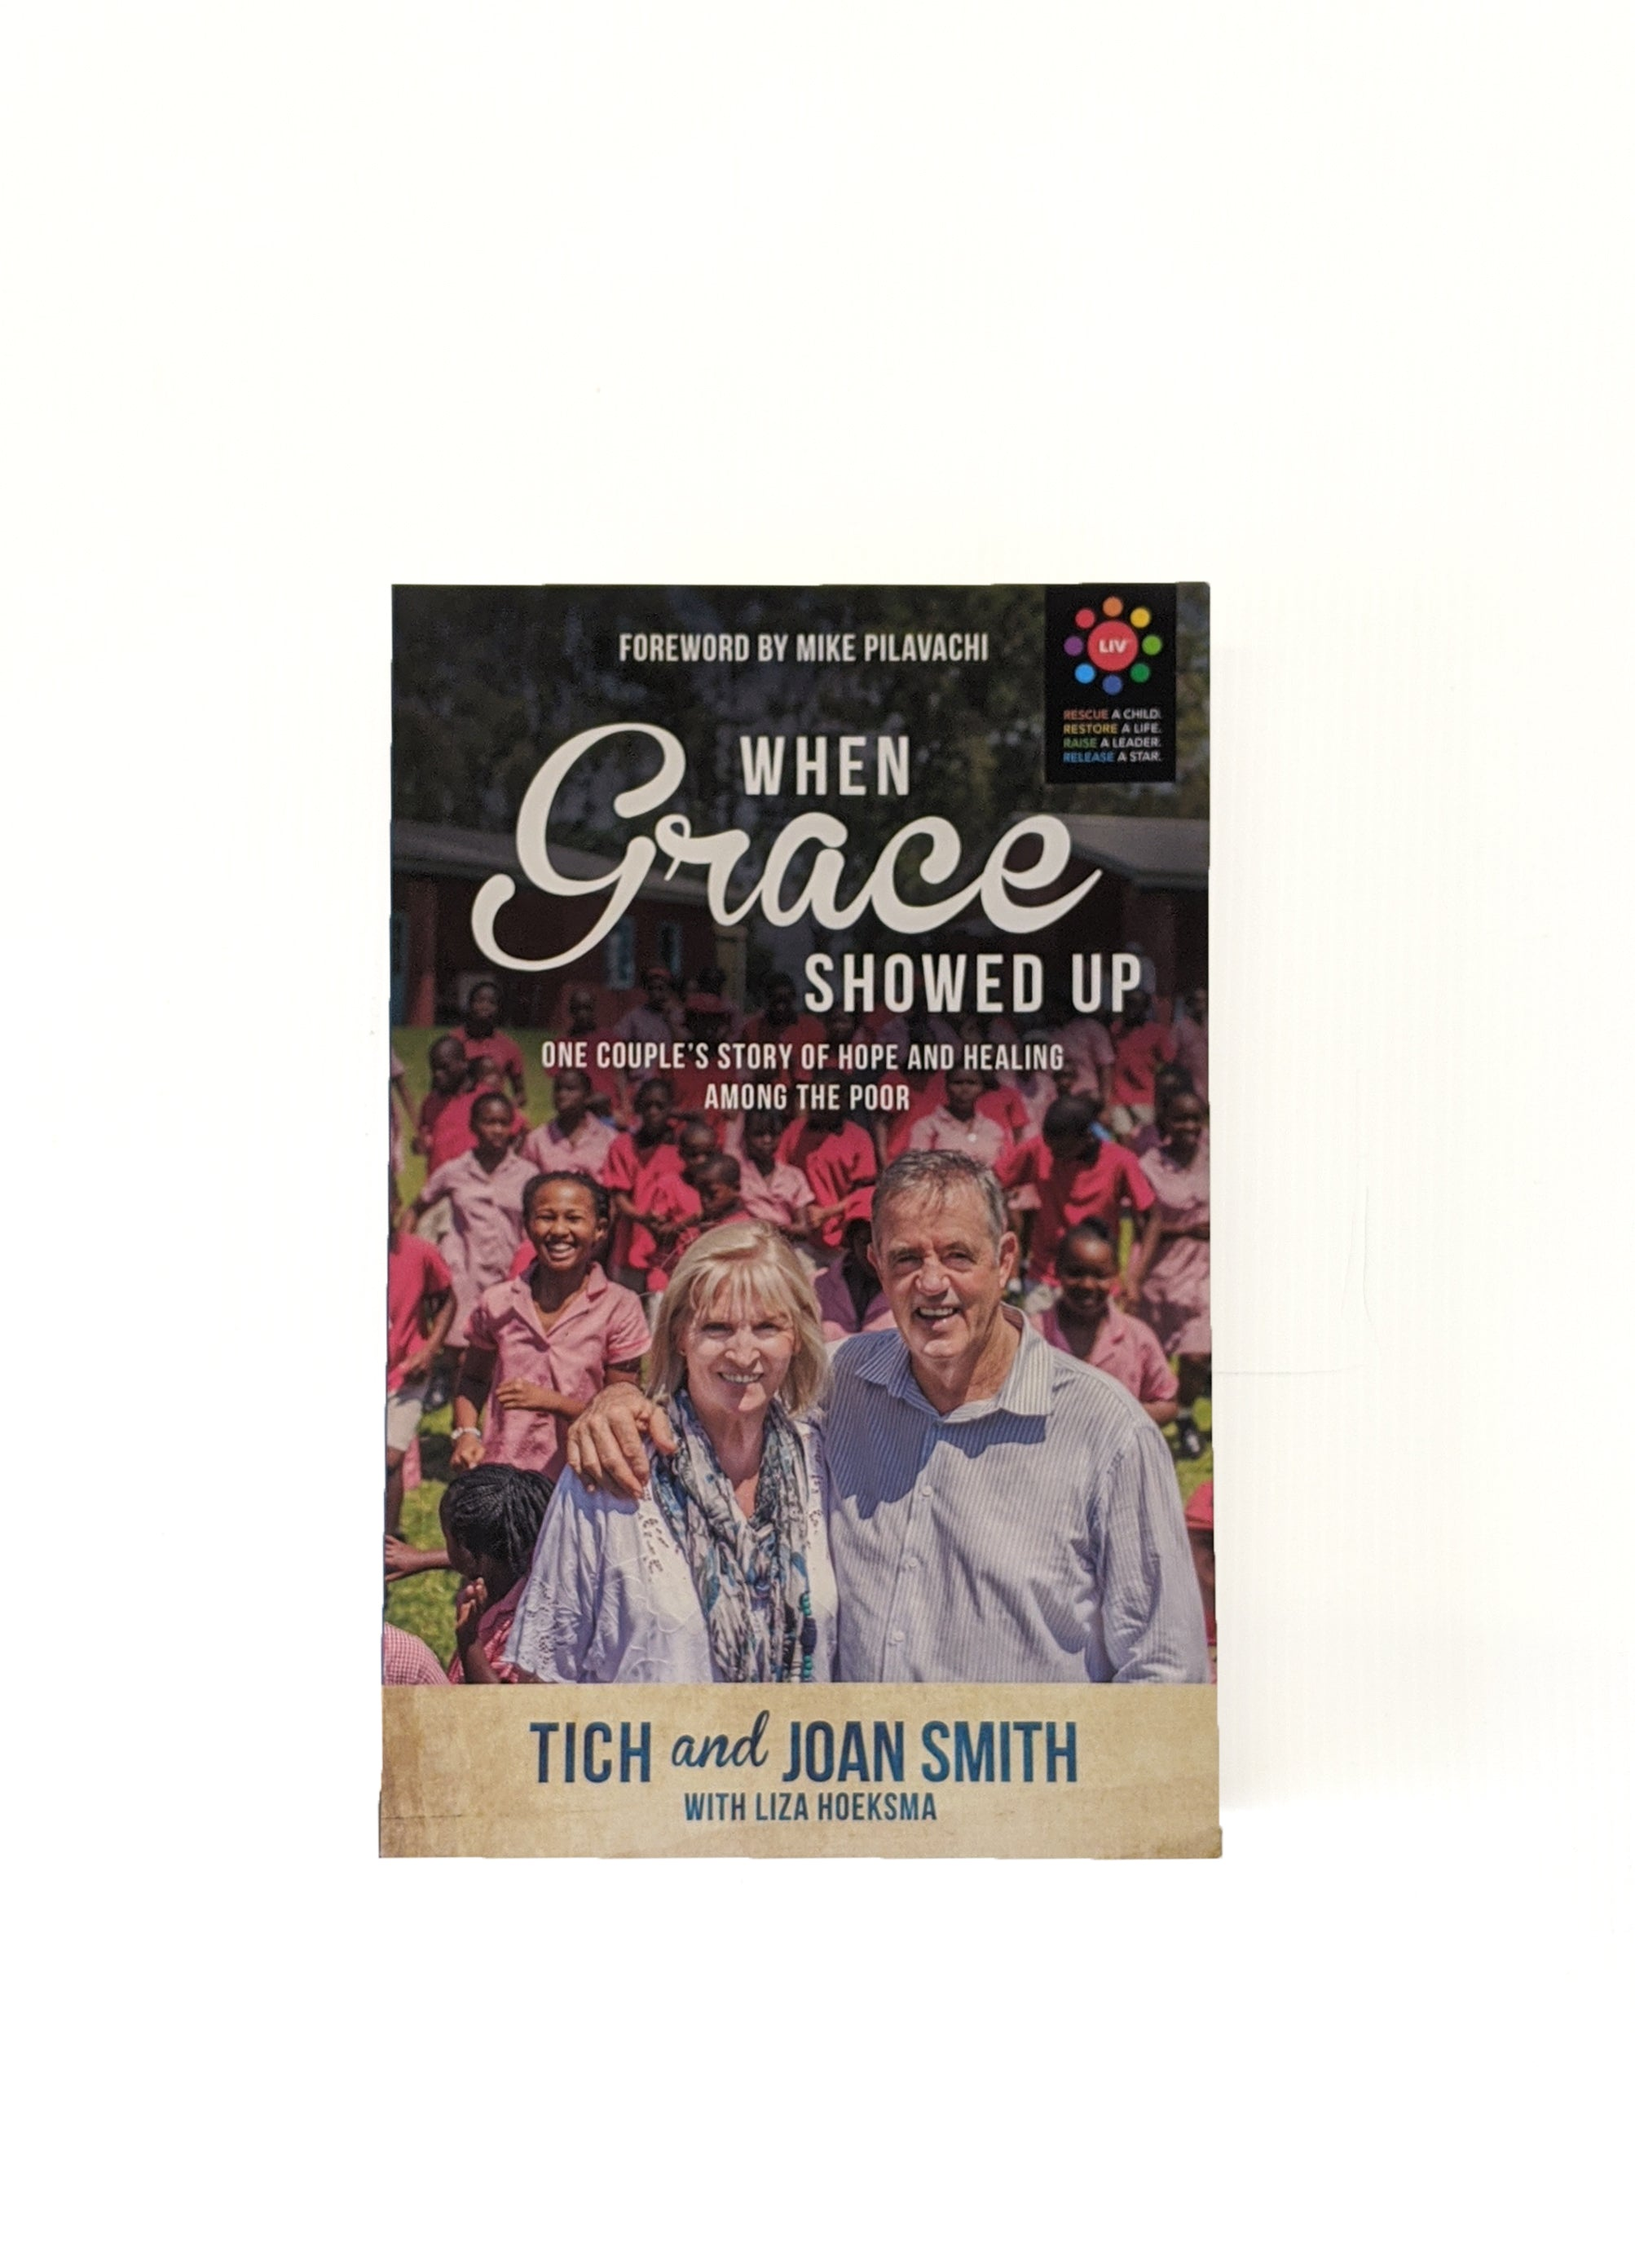 When Grace Showed Up Book - LIV Creative